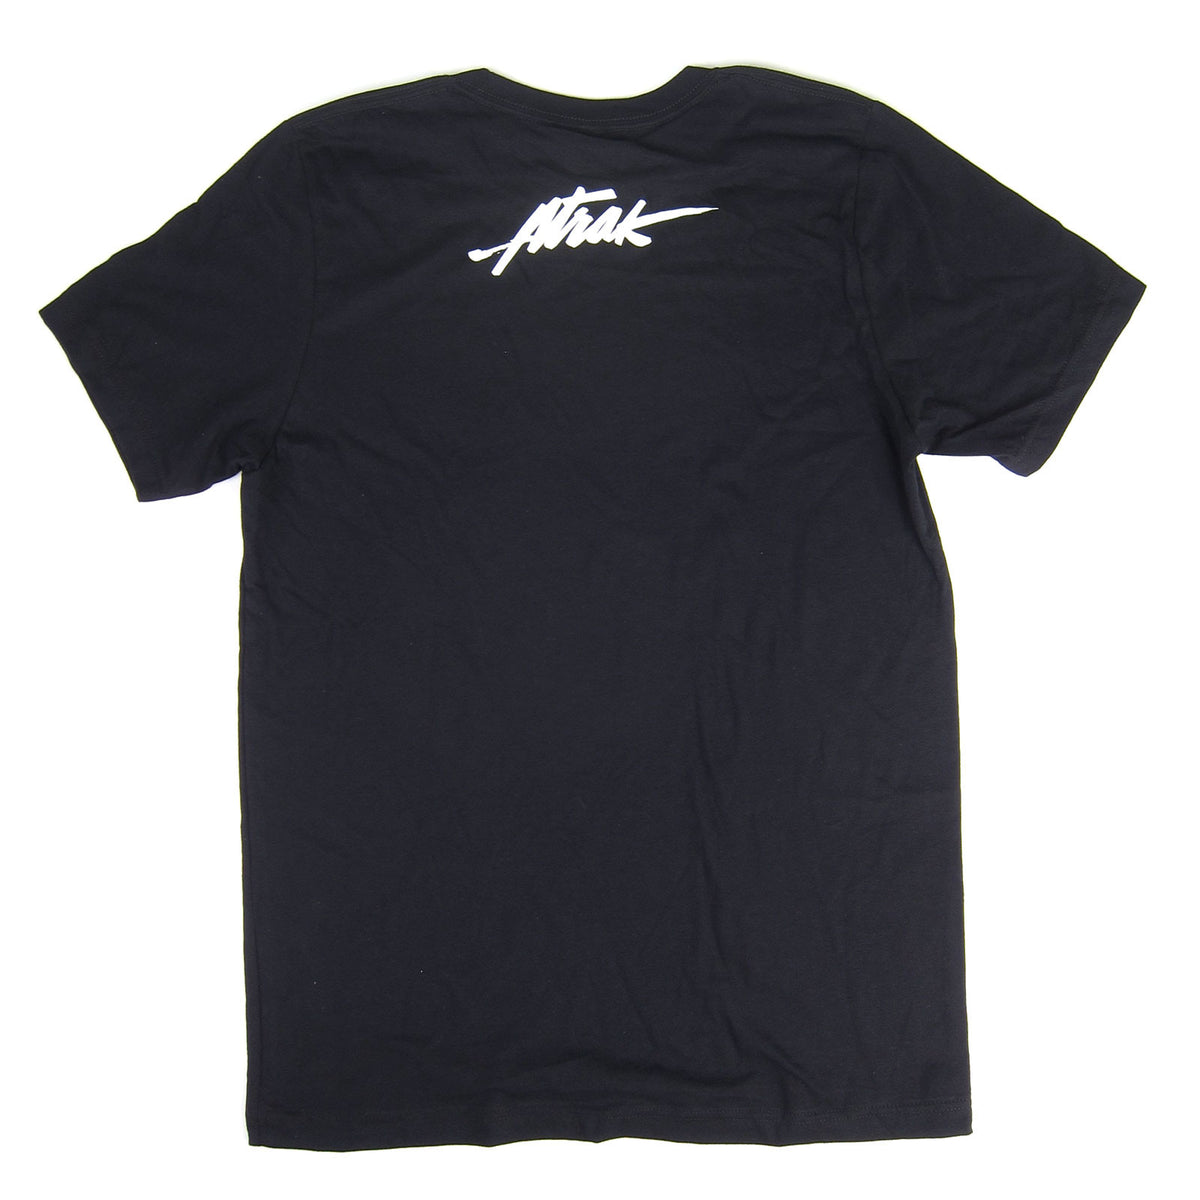 Fool's Gold: A-Trak #RealDJing Shirt - Black